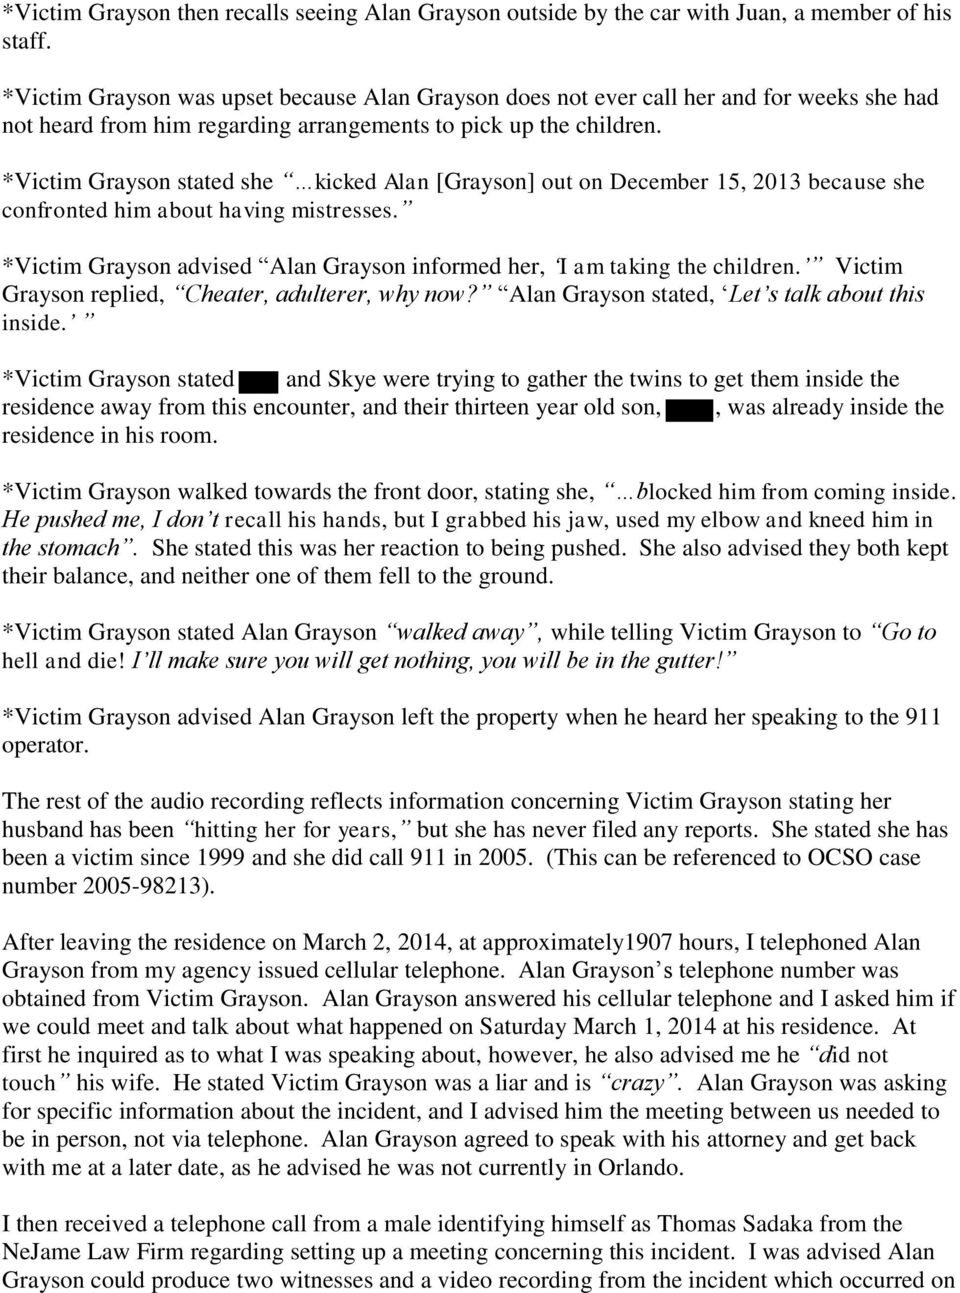 *Victim Grayson stated she kicked Alan [Grayson] out on December 15, 2013 because she confronted him about having mistresses.